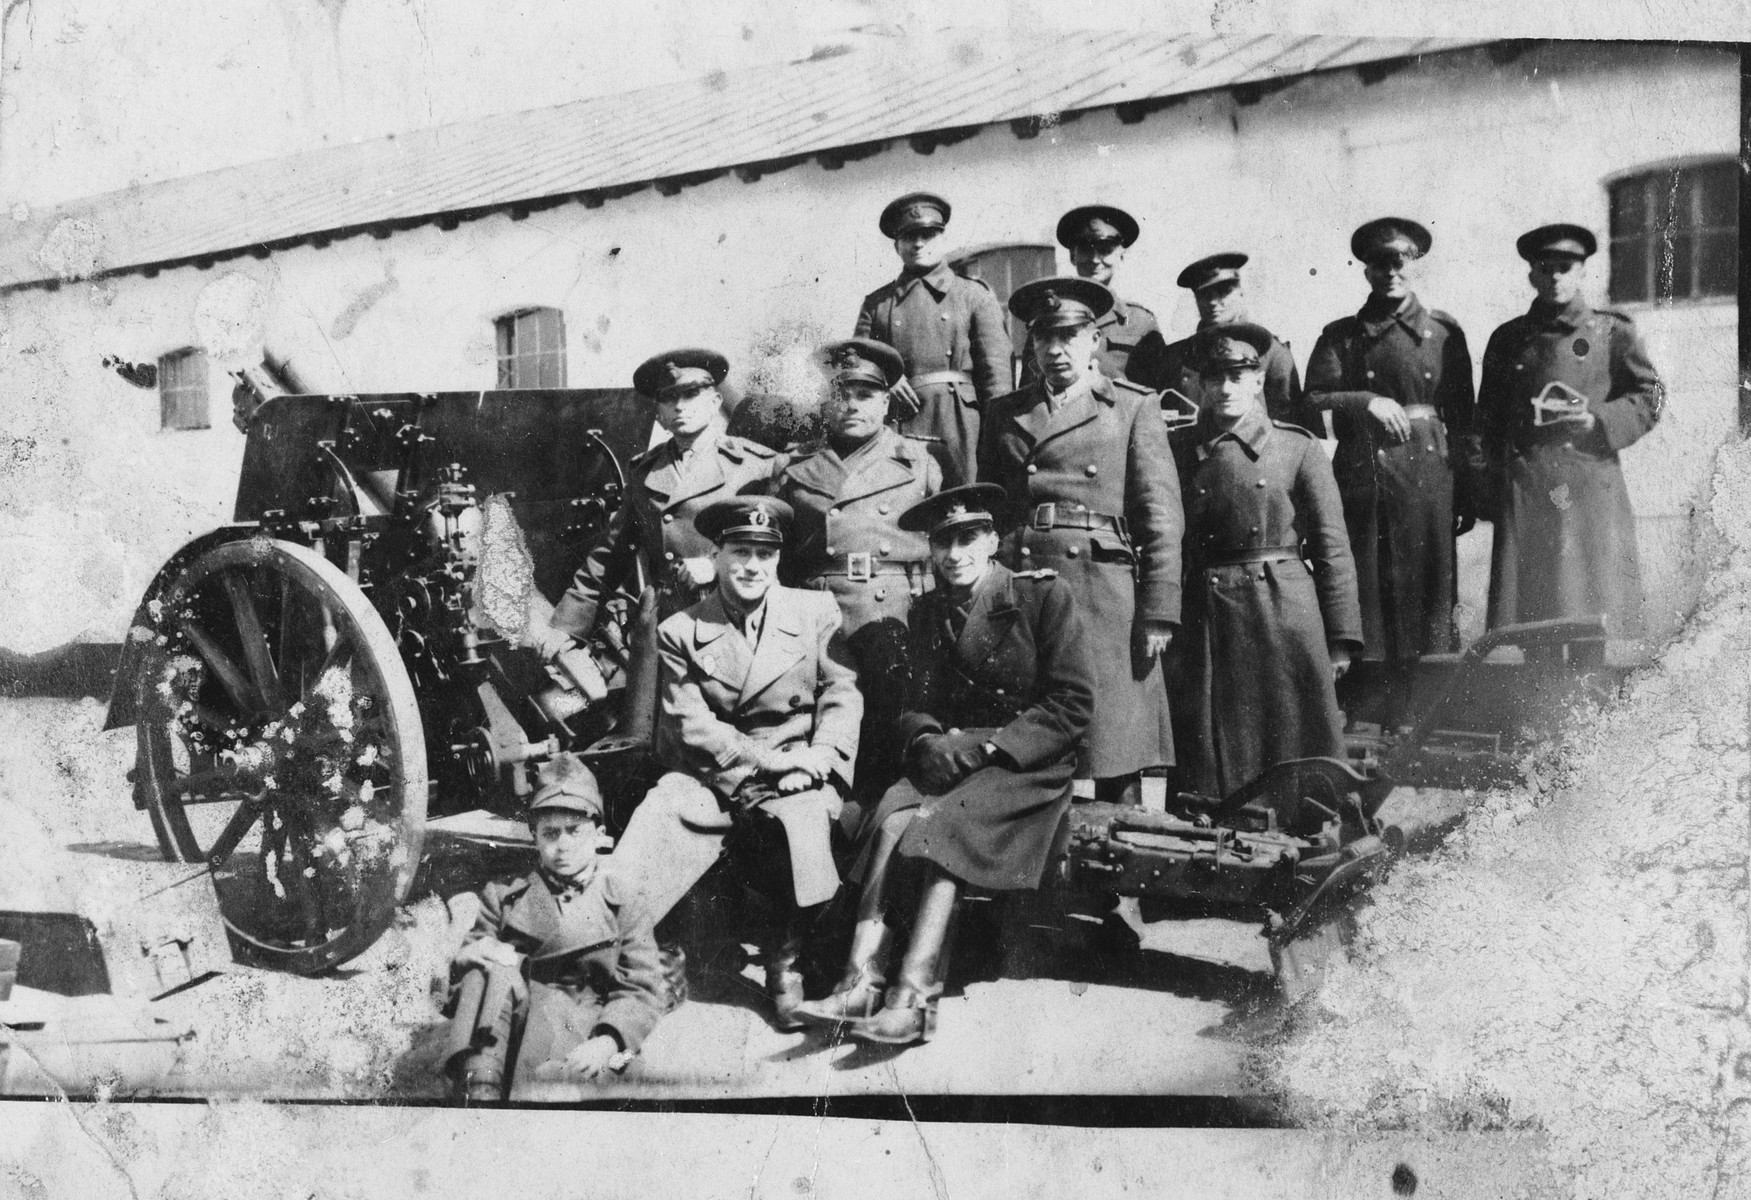 An artillery unit of the Romanian army.  Pictured on the far right of the center row is a Jewish soldier, Henrich (Anica) Brener.